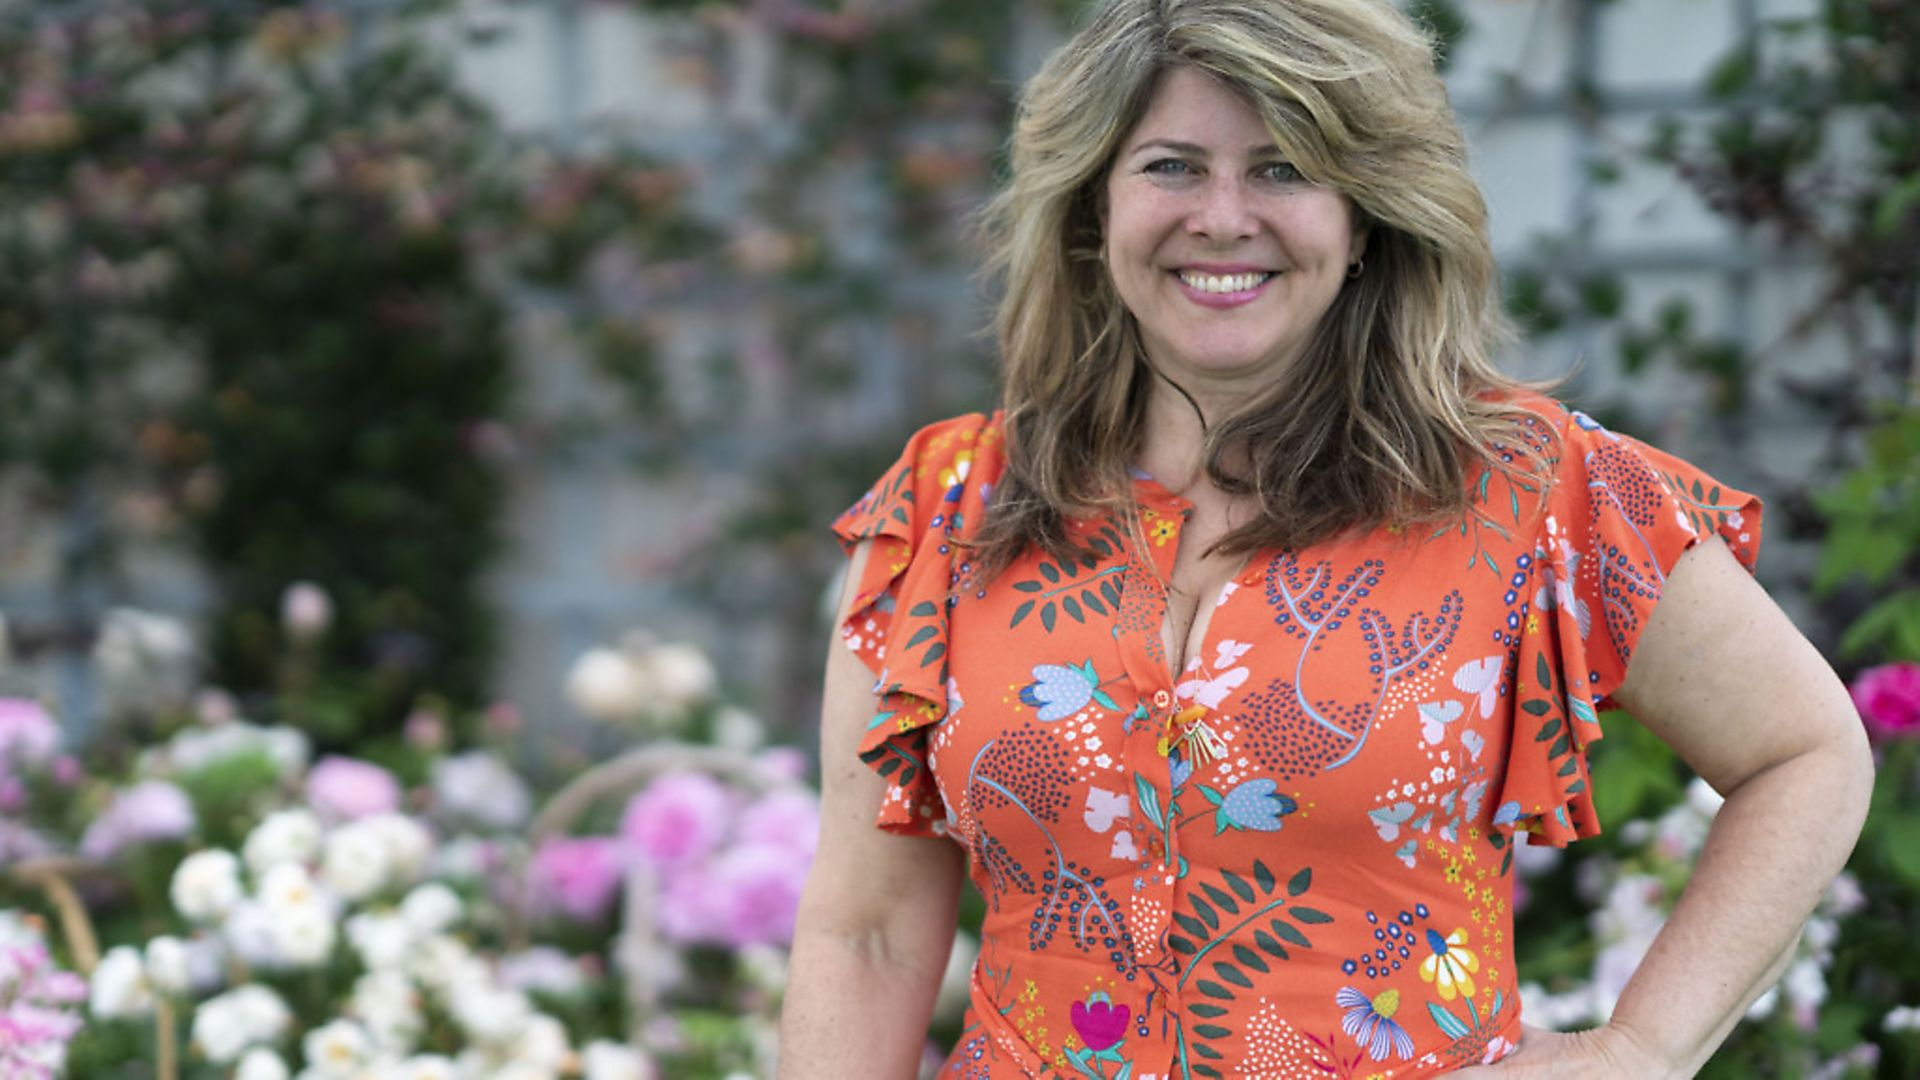 Naomi Wolf, American author, during the 2019 Hay Festival on May 25, 2019 in Hay-on-Wye, Wales. (Photo by David Levenson/Getty Images) - Credit: Getty Images